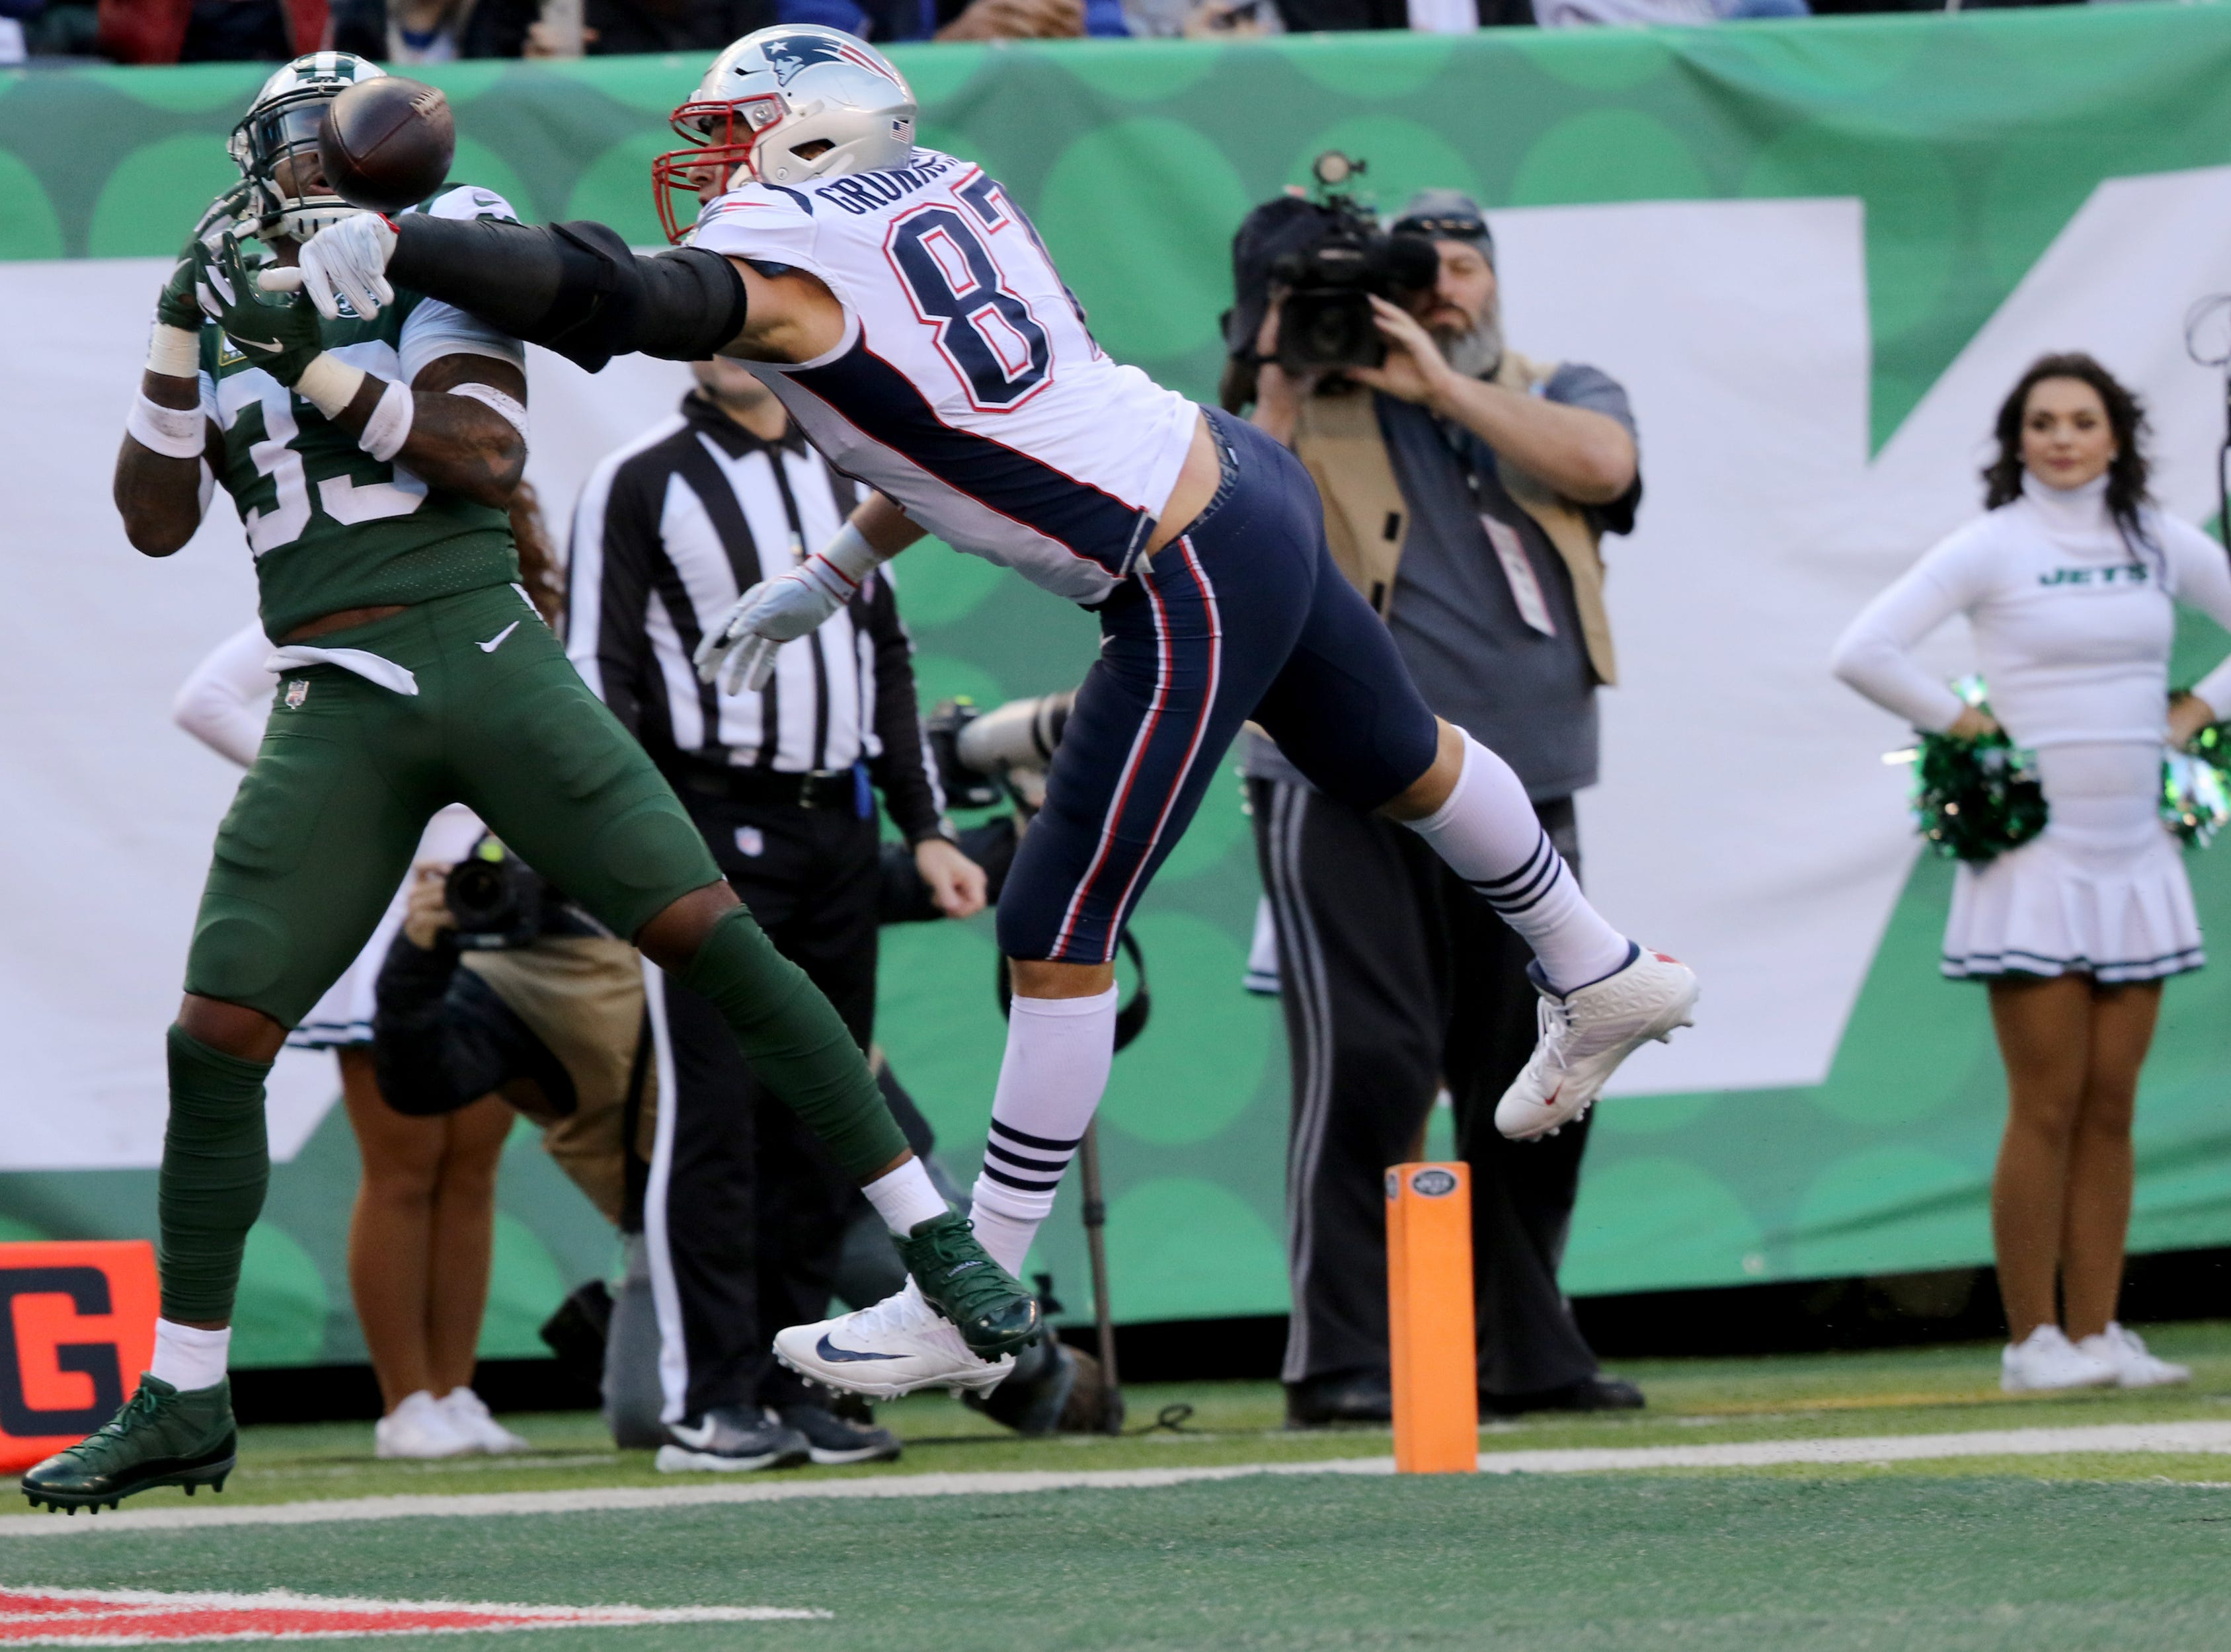 Rob Gronkowski, of the Patriots makes sure Jamal Adams, of the Jets, doesn't intercept the ball in the endzone. November 25, 2018.